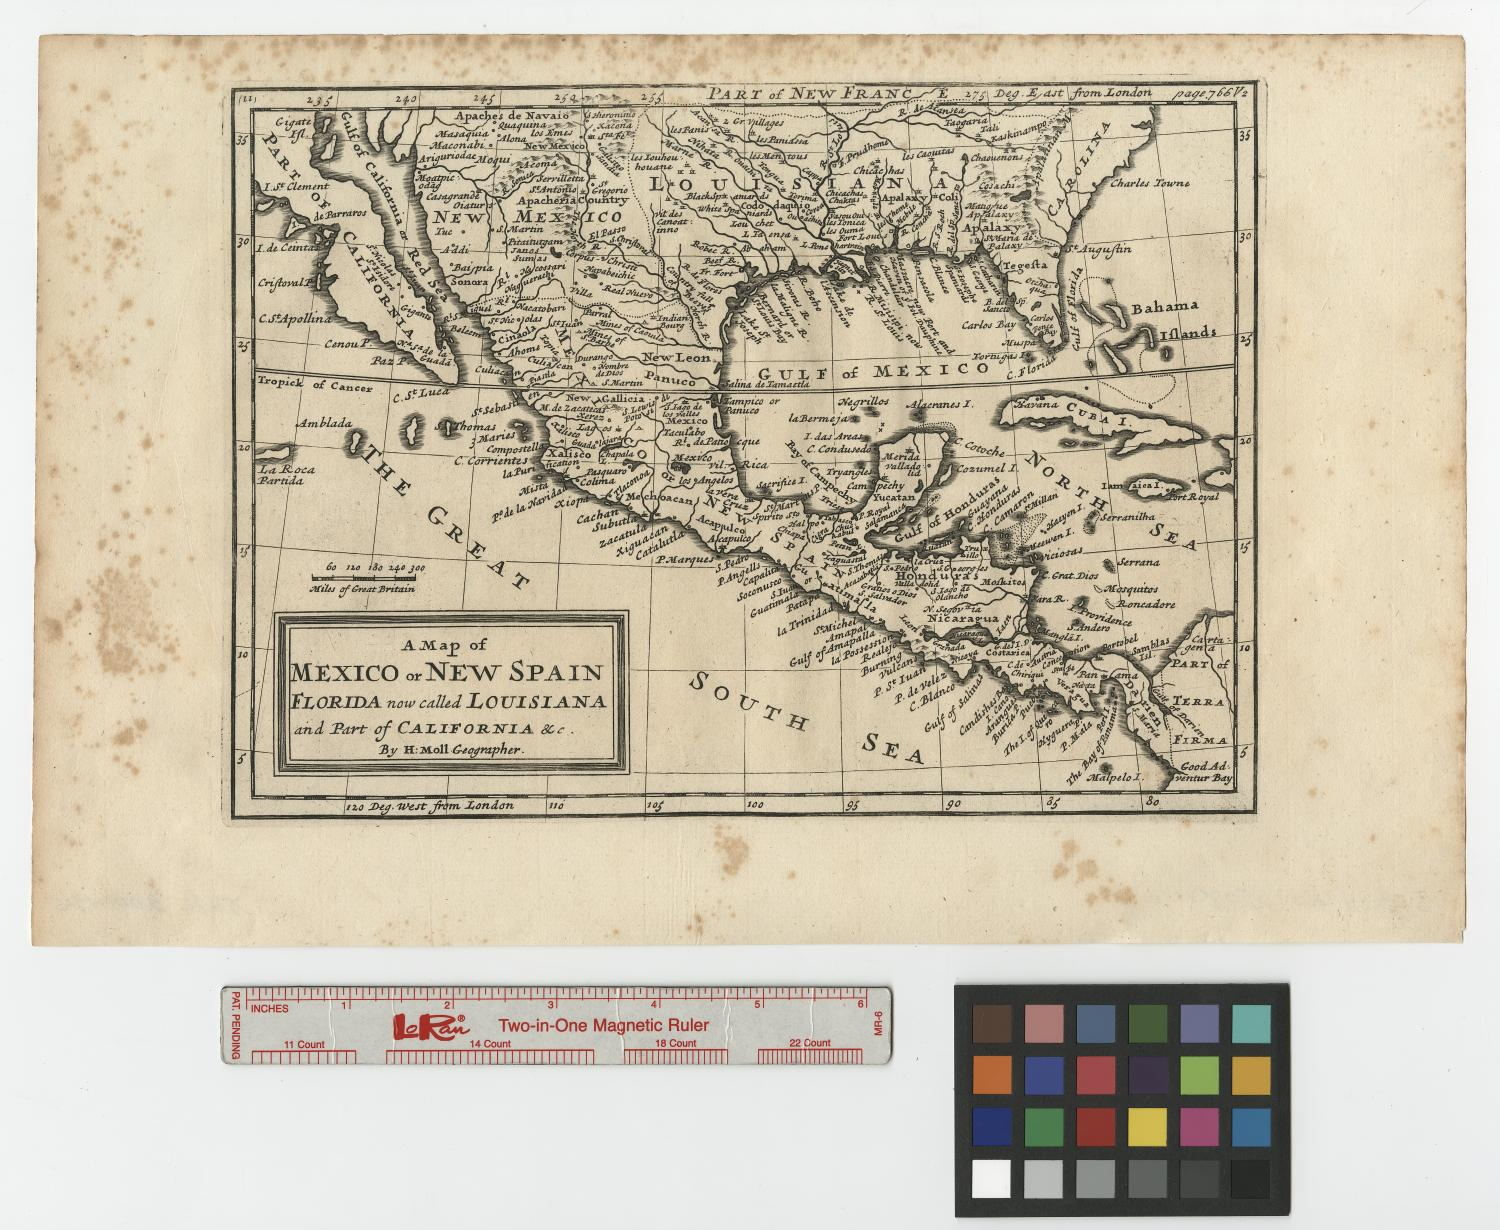 a map of mexico or new spain florida now called louisiana and